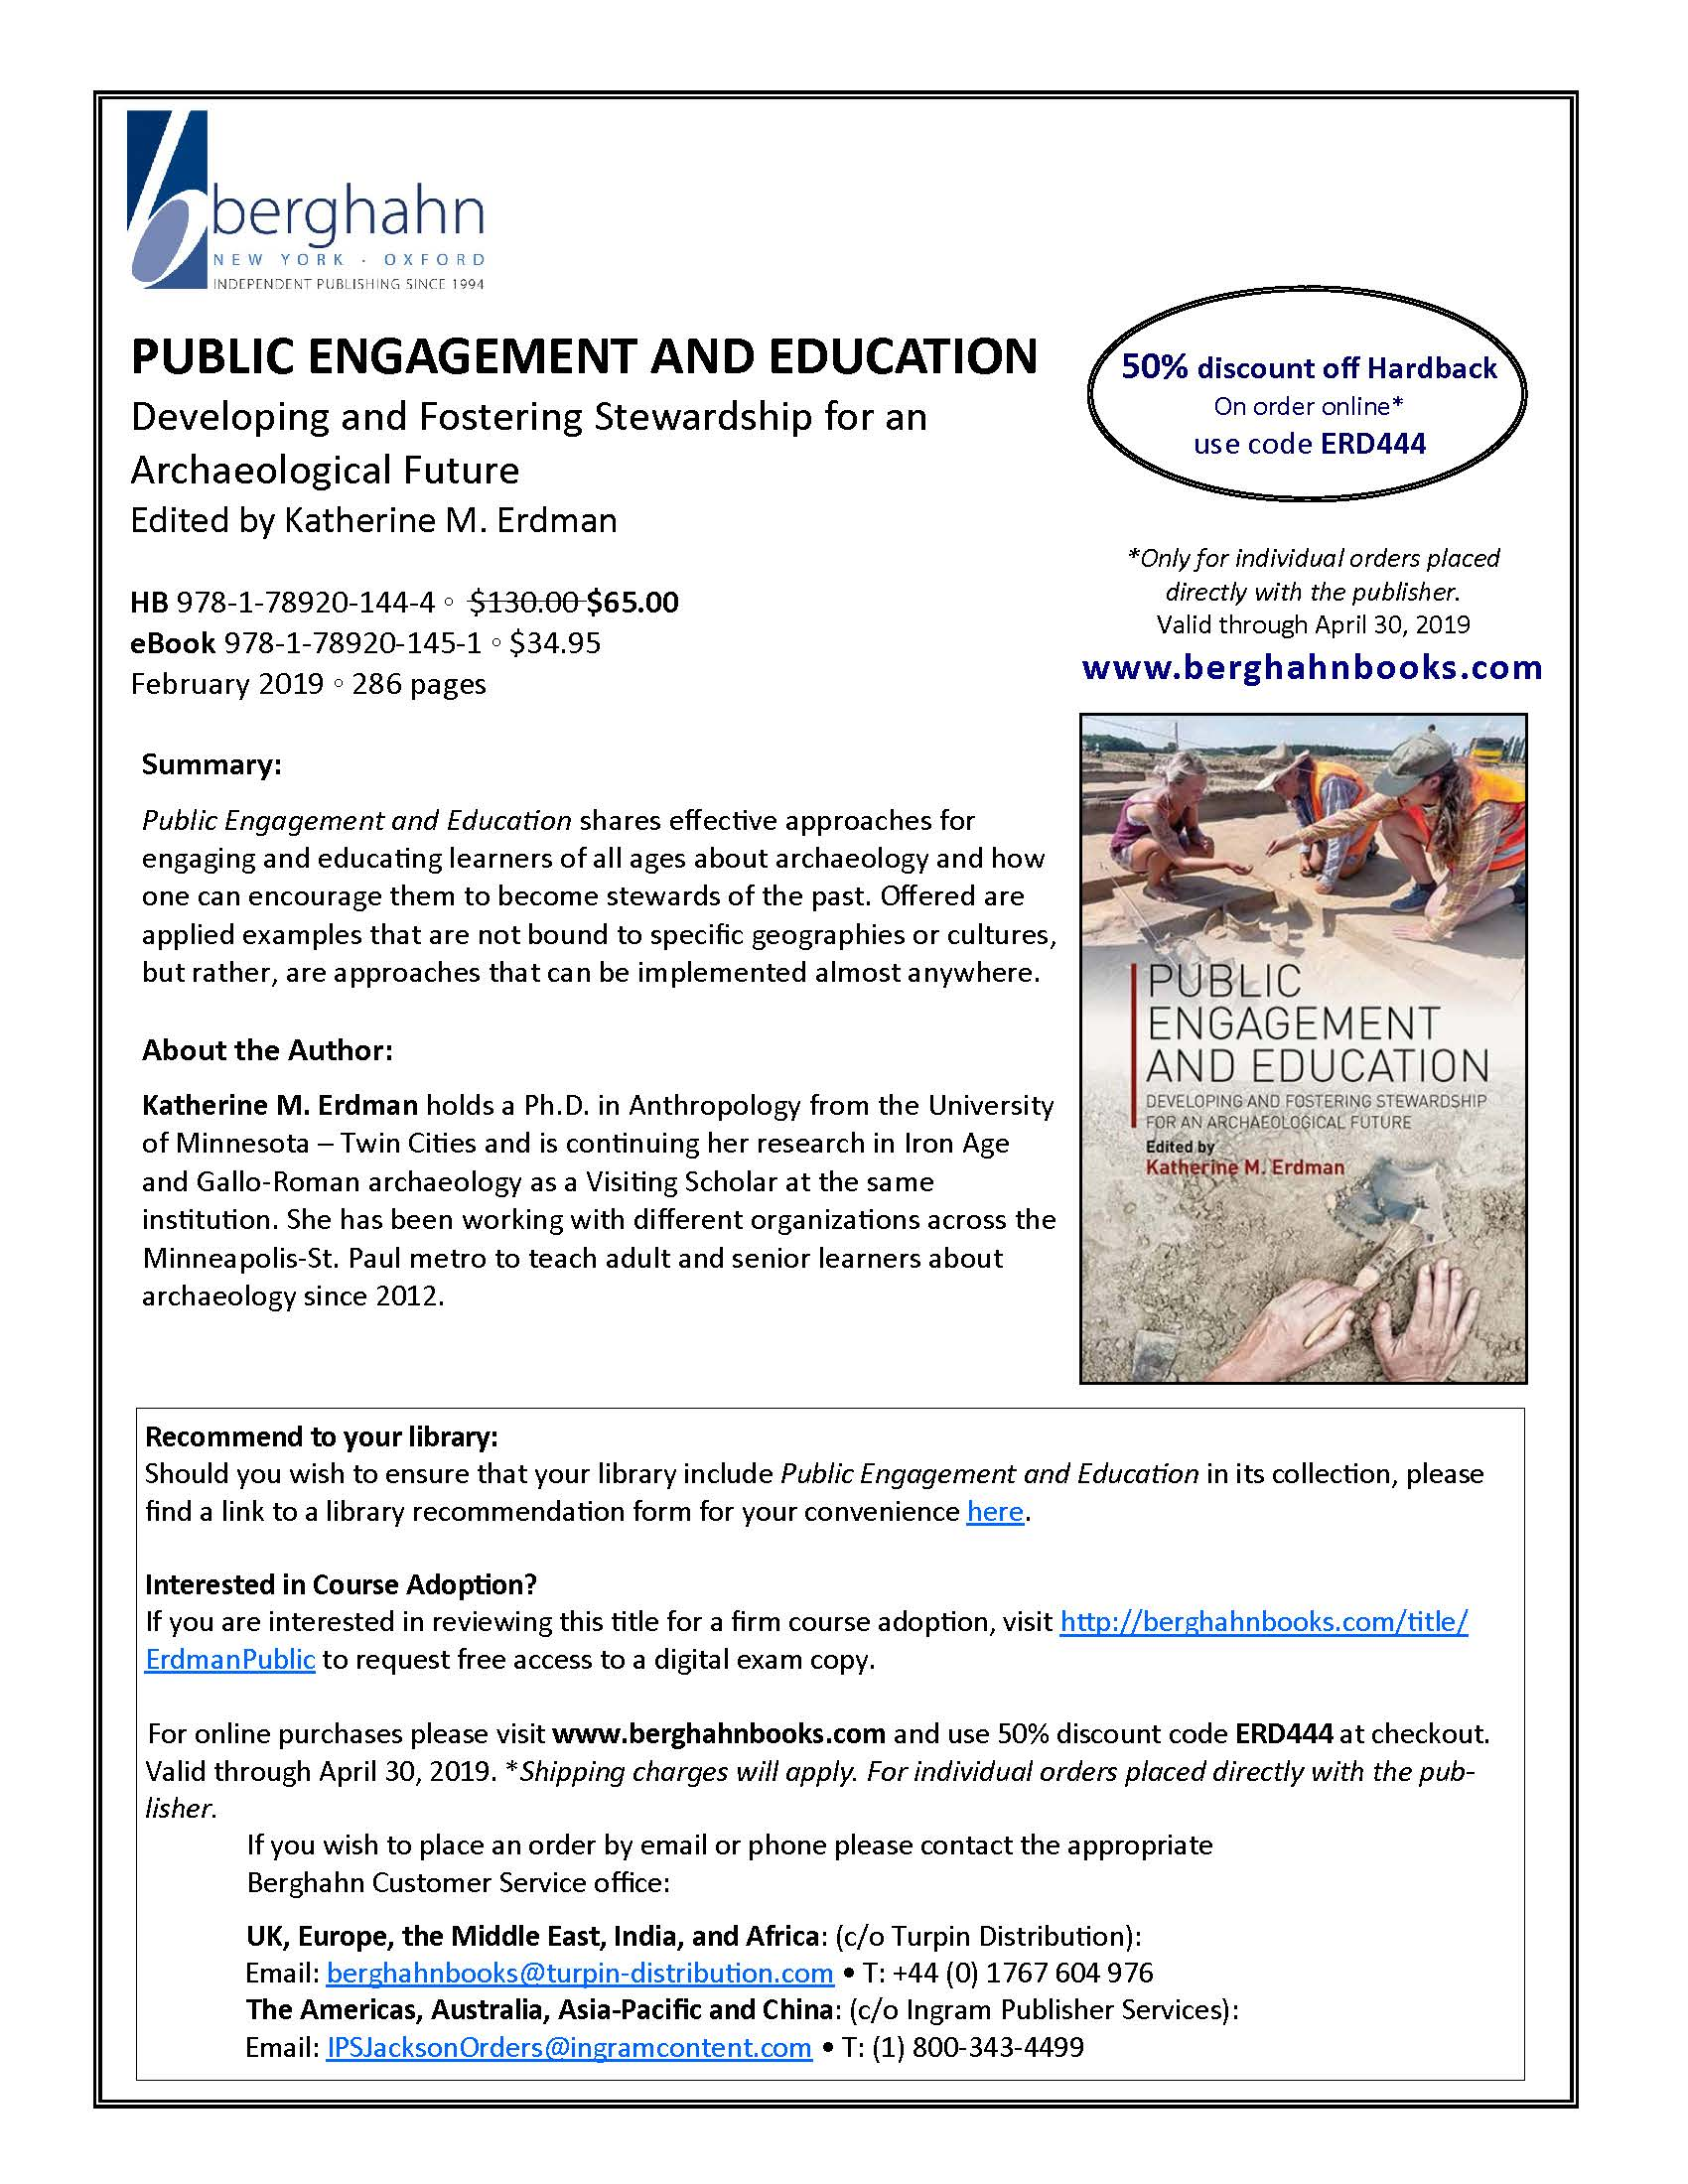 Promotional Flyer for the Book Public Engagement and Education